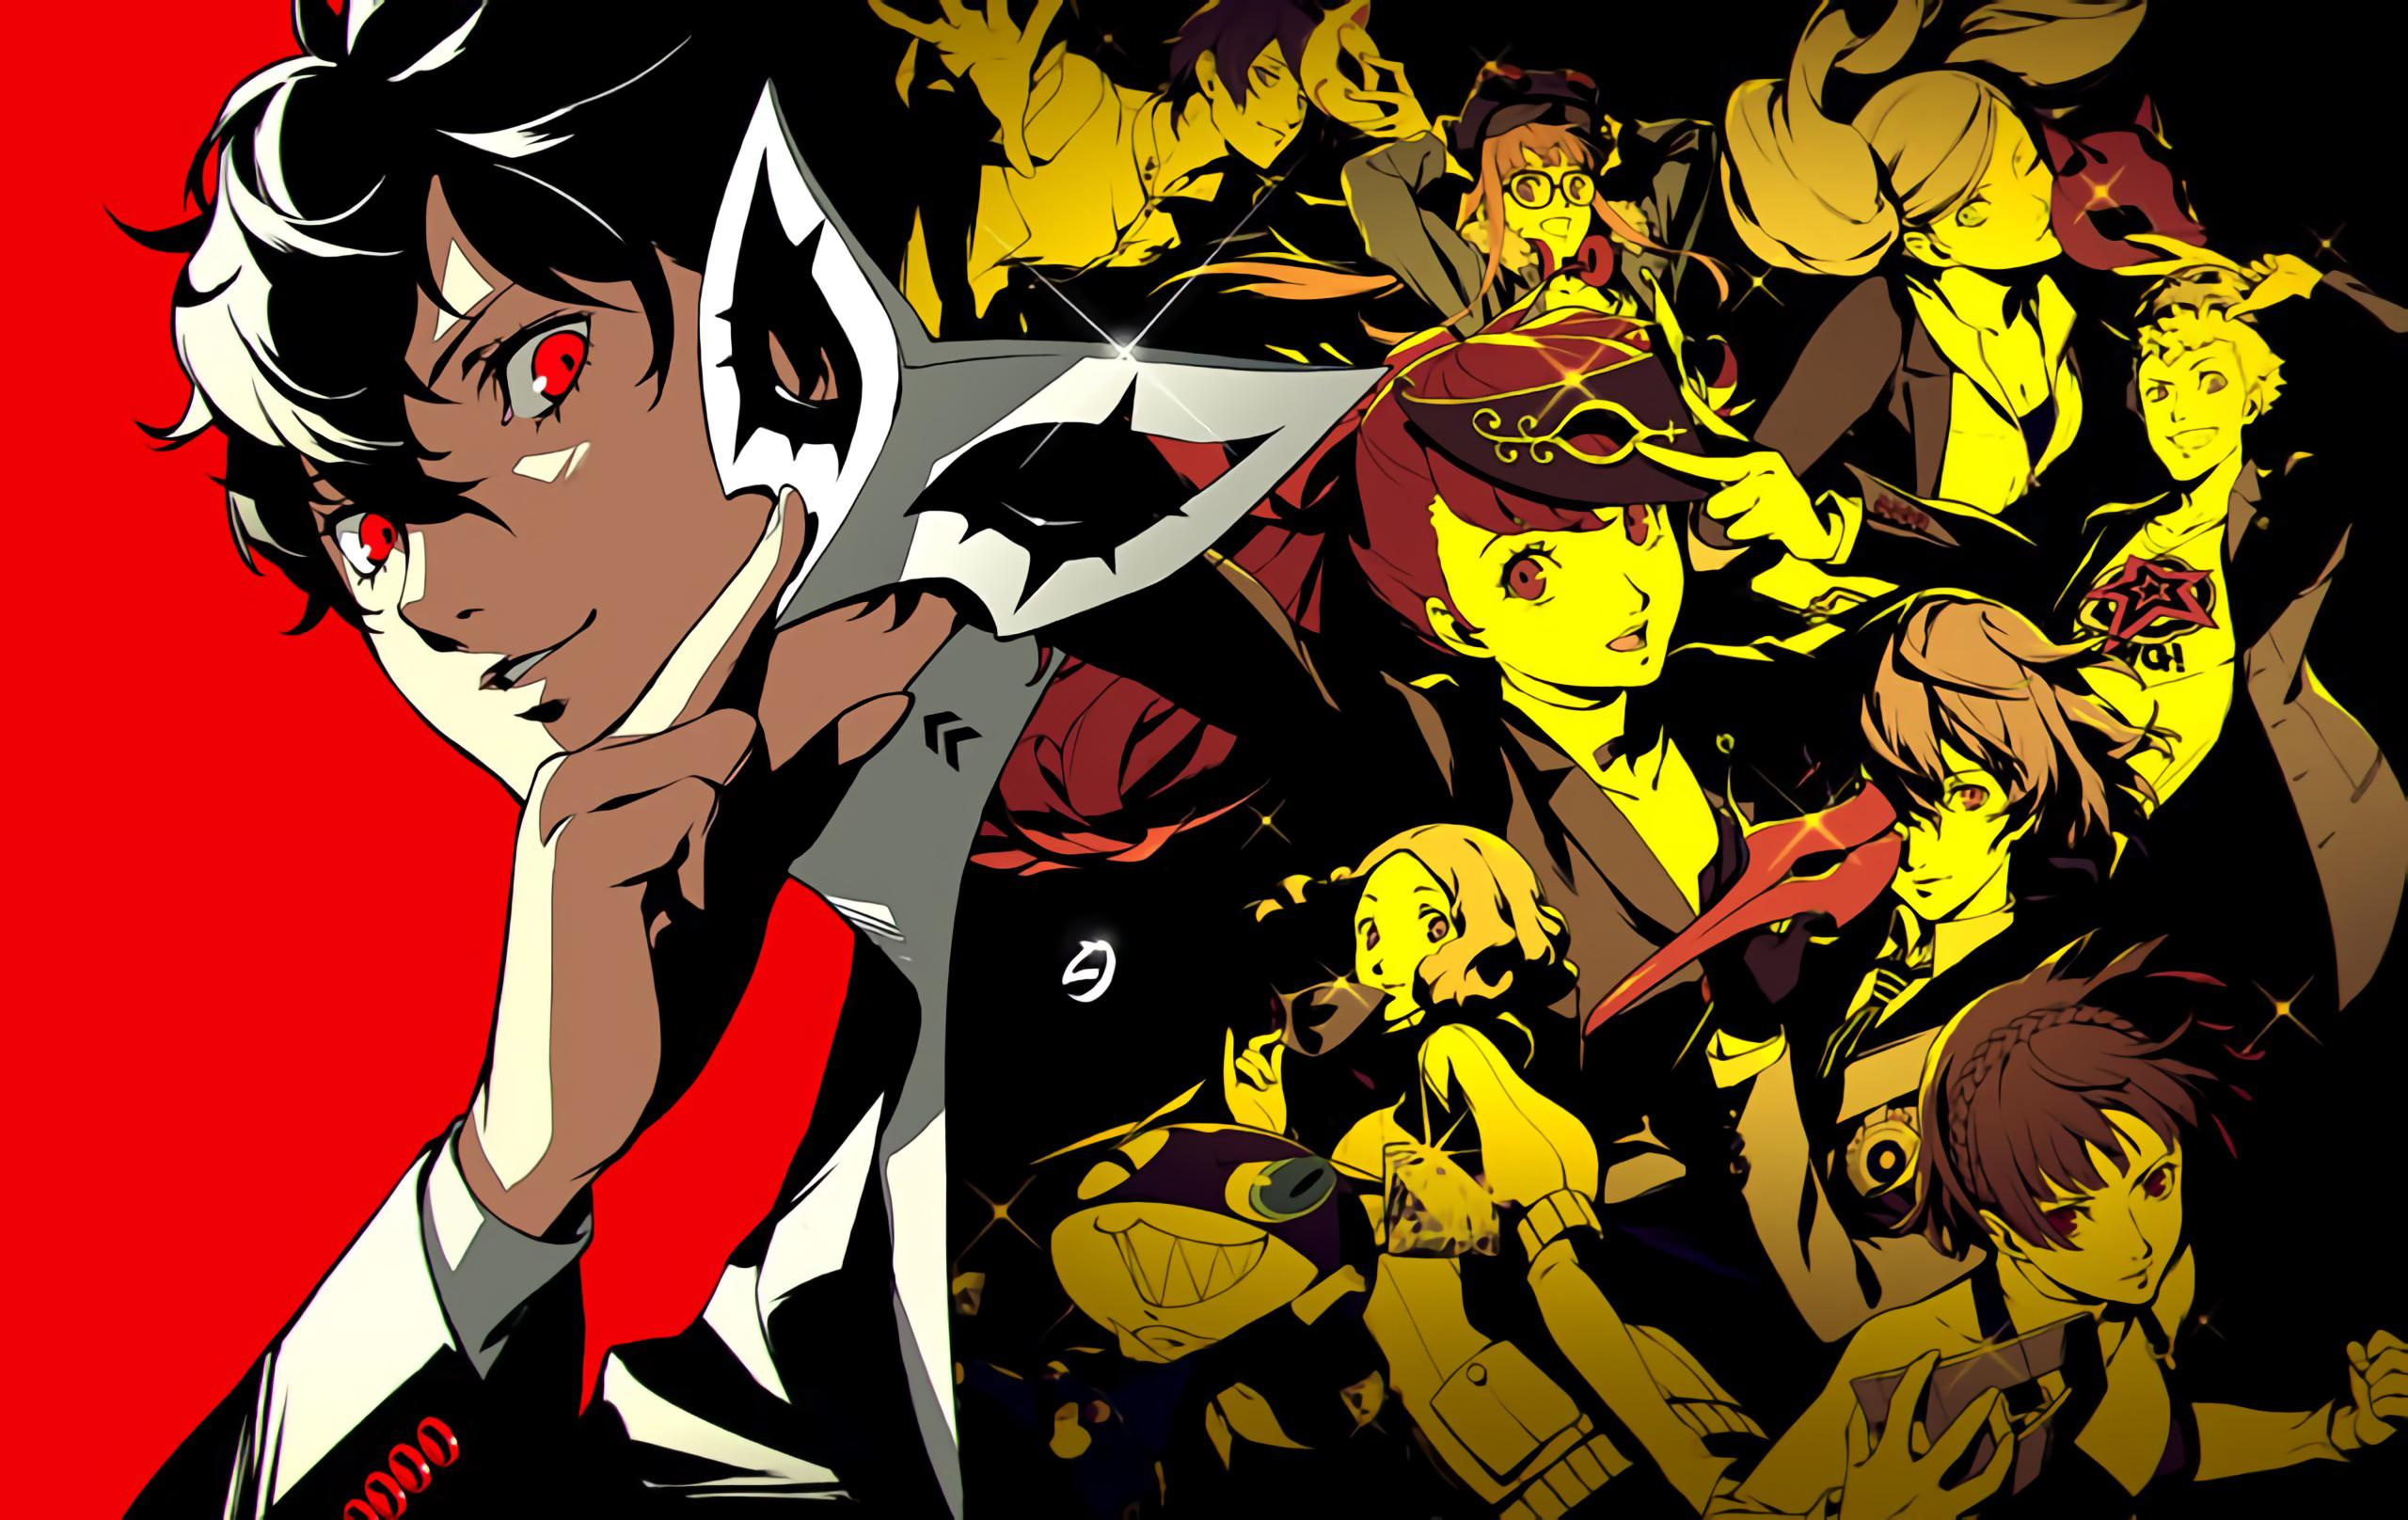 Persona 5 Royal Has 'Several New Endings' Based on How You